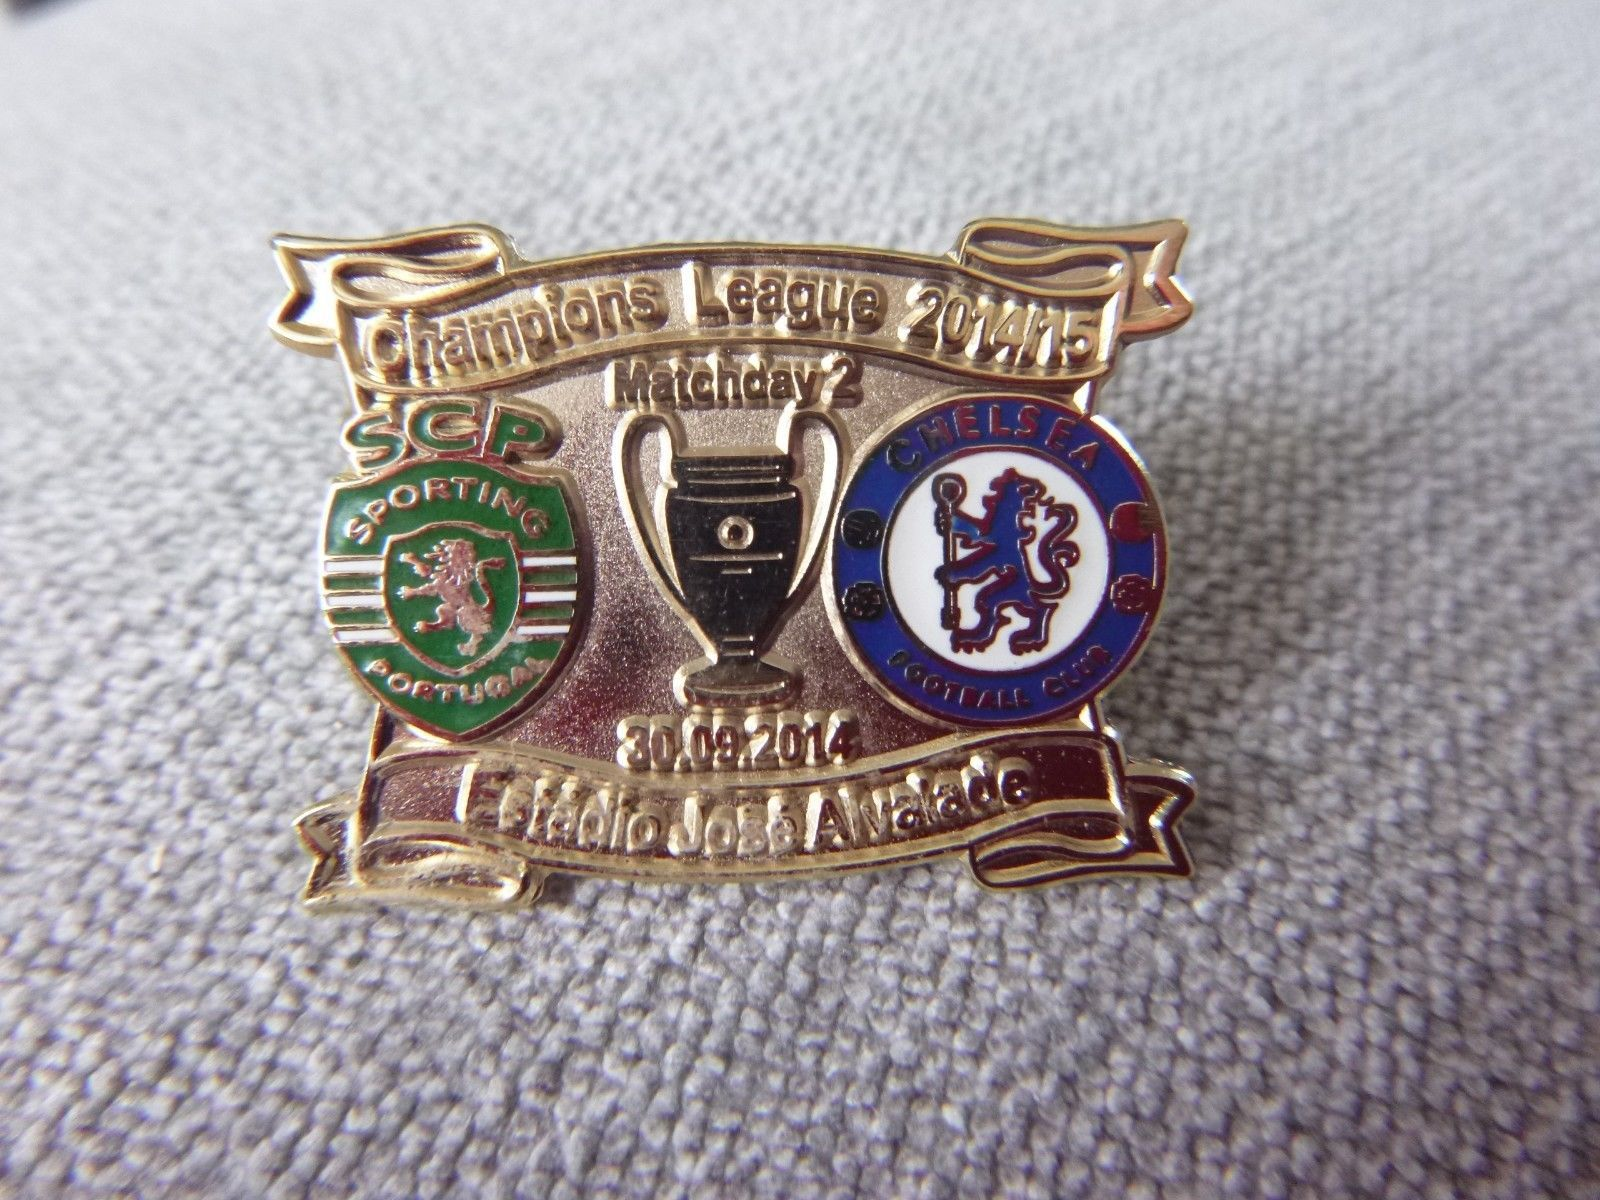 Sporting Lisbon V Chelsea 2014 2015 Champions League Match Day